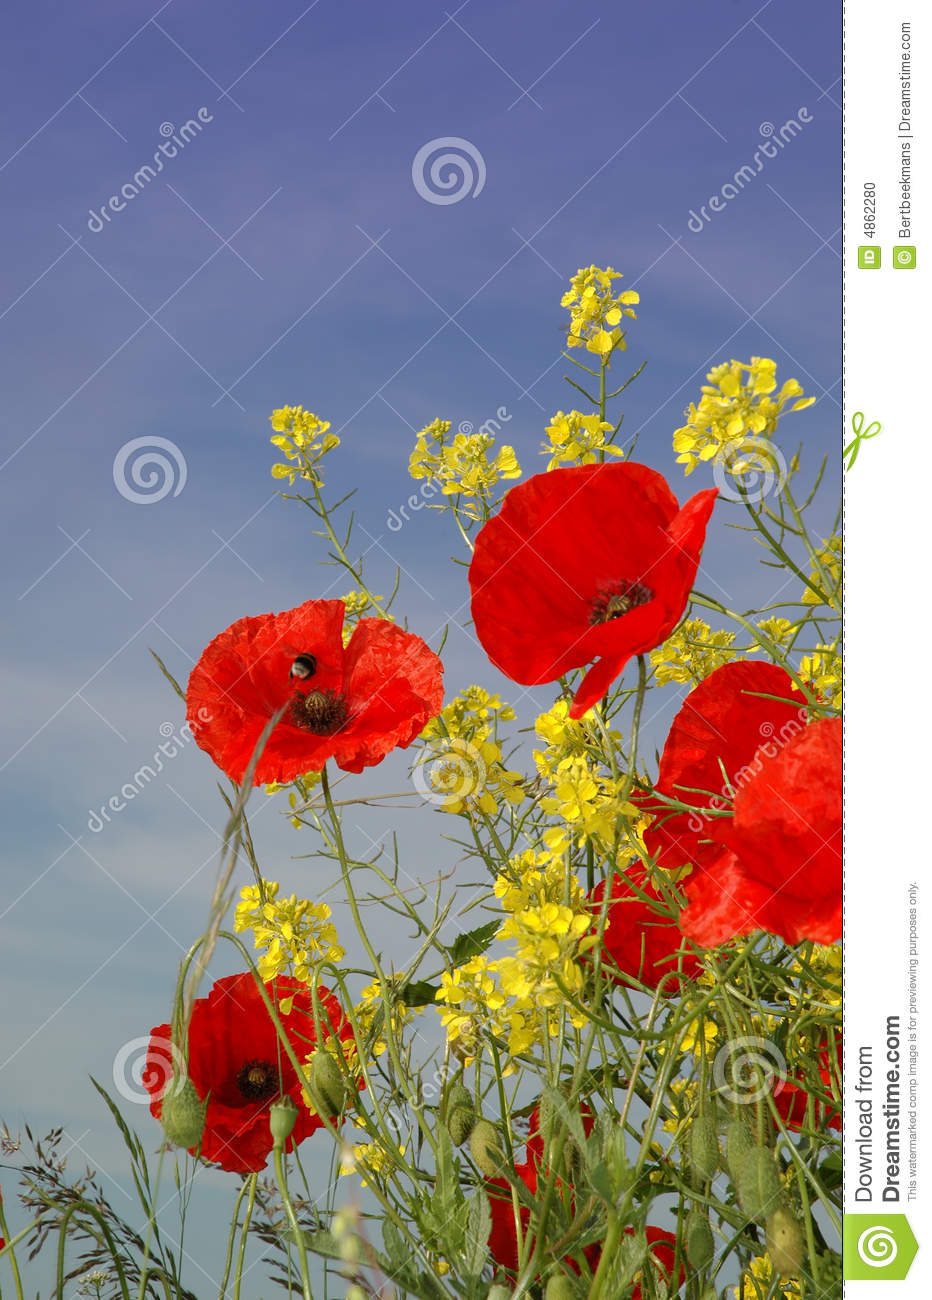 Nice red Poppies